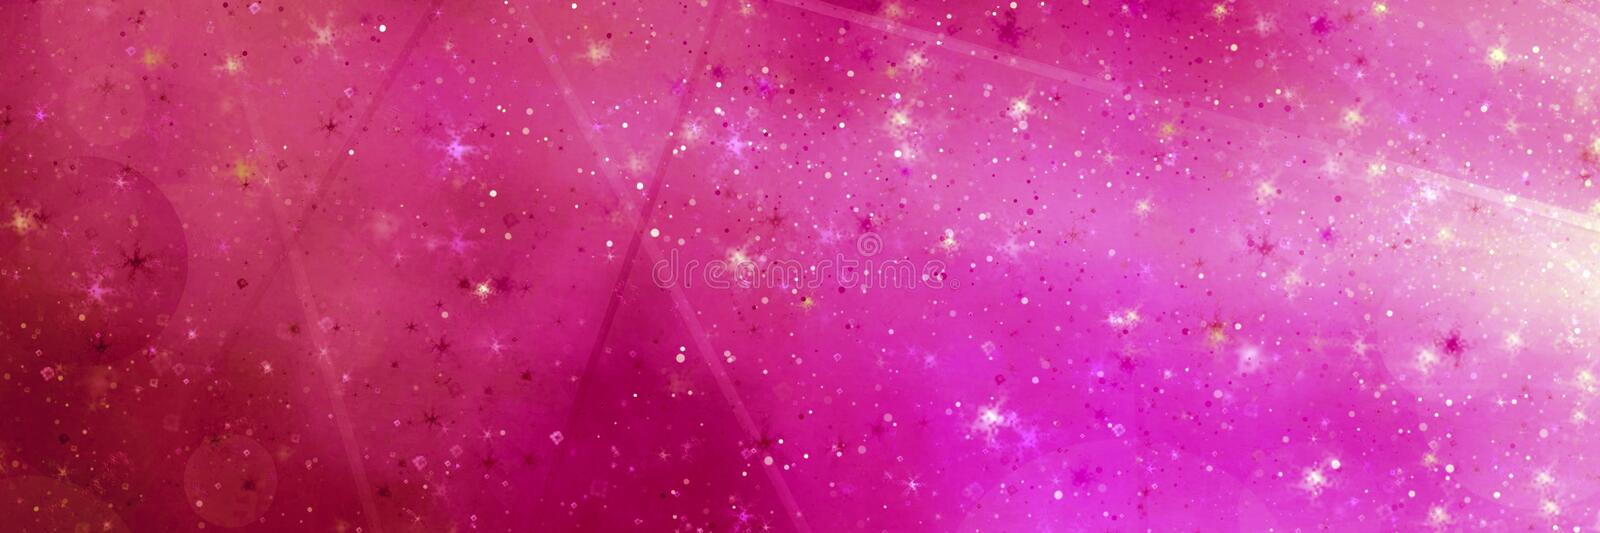 Abstract pink magic panoramic background stock photo